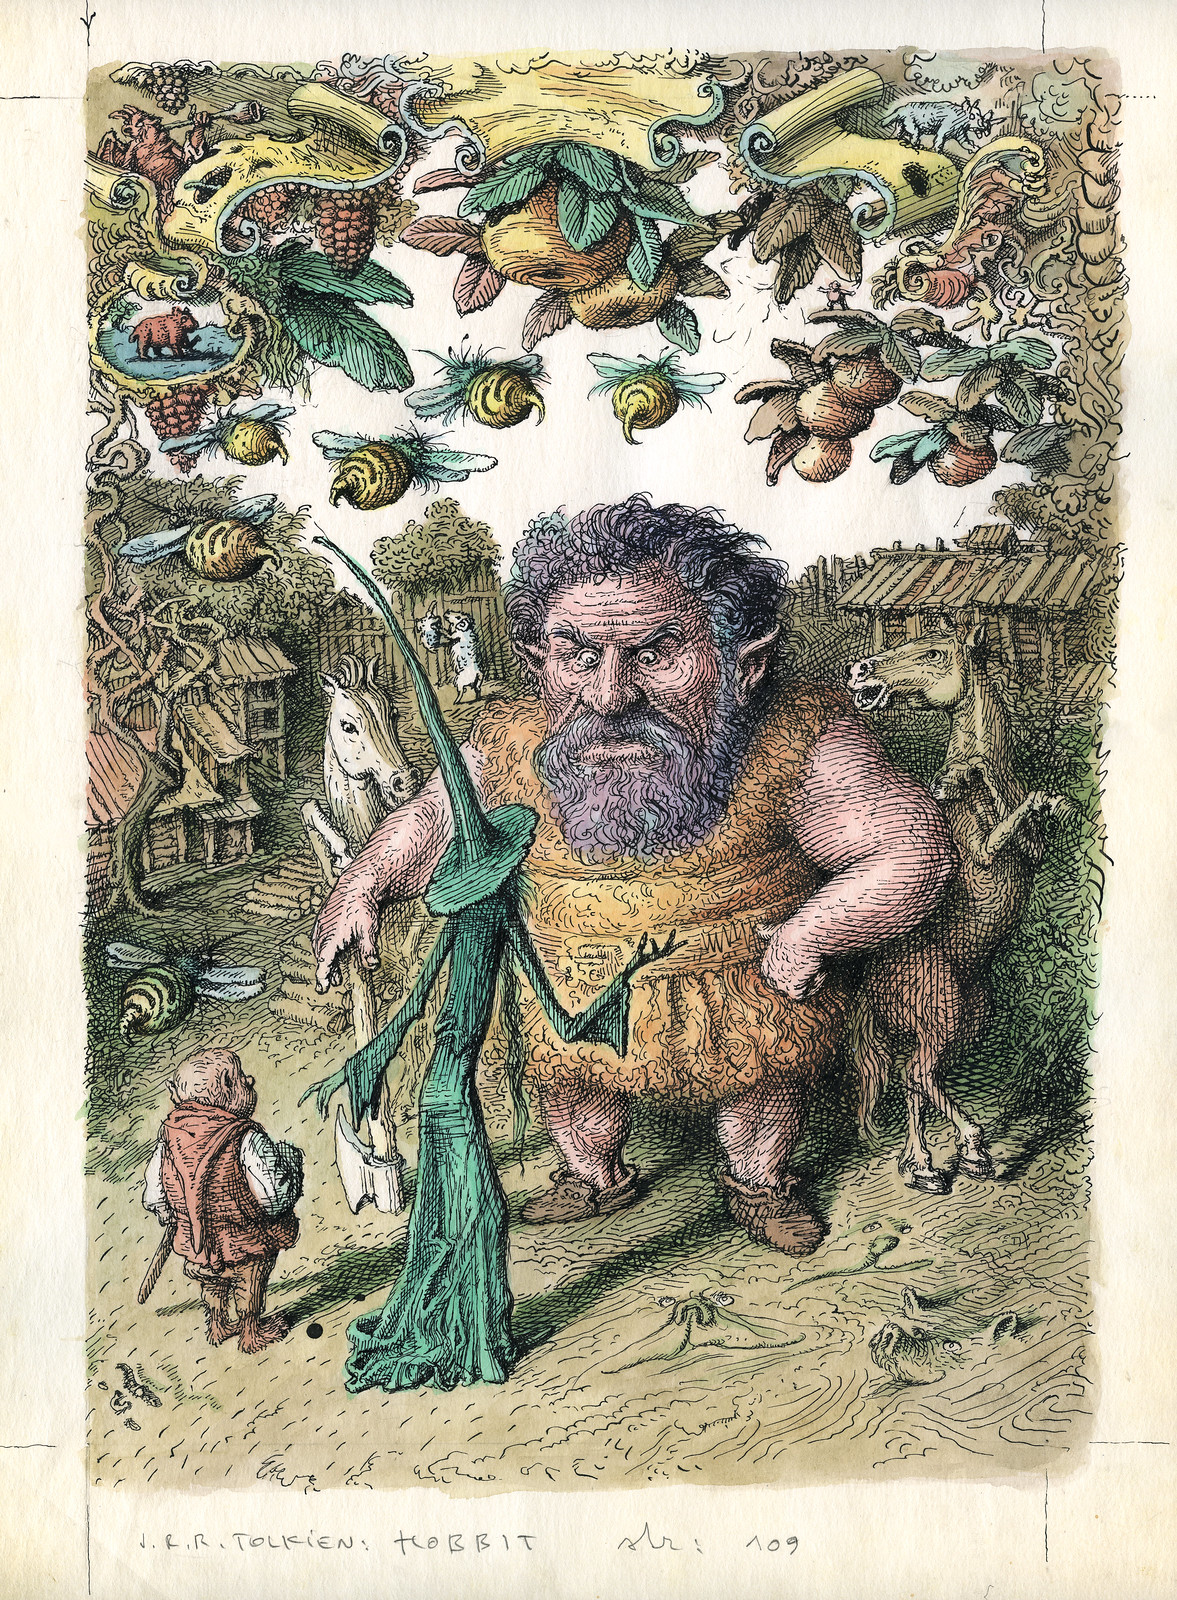 Peter Klucik -The Hobbit, Illustration 18